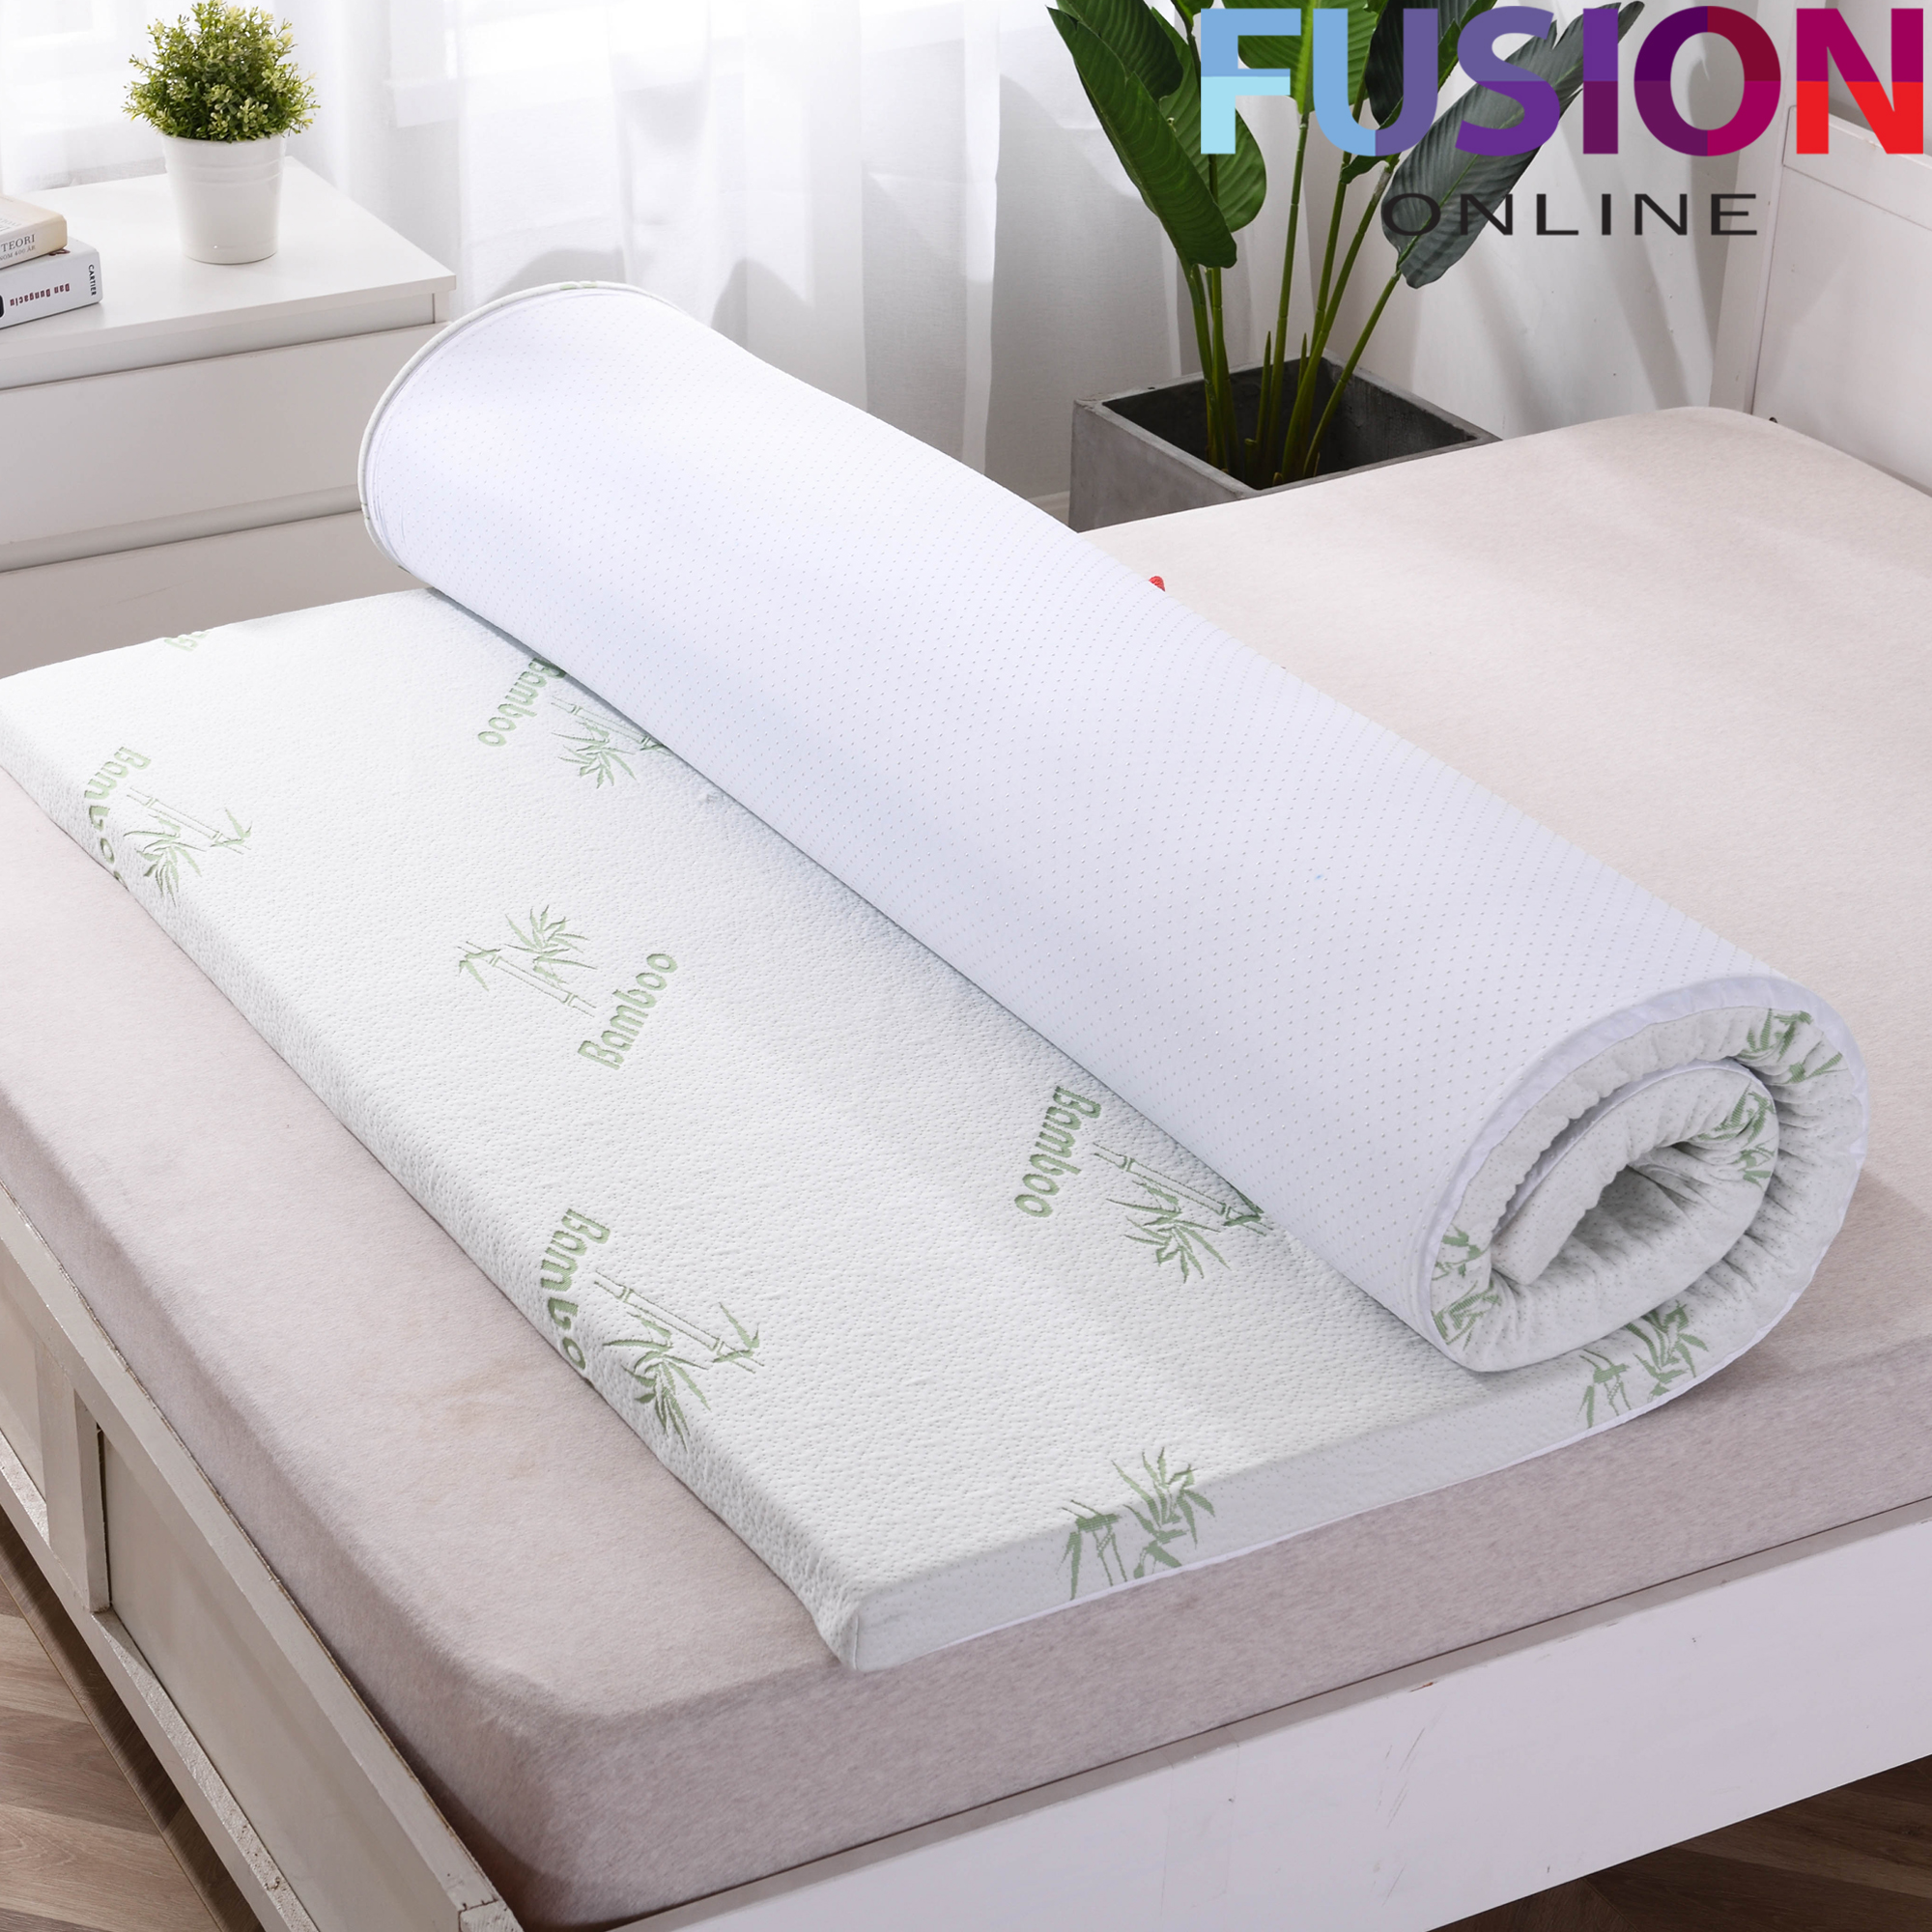 Memory Foam Mattress Topper Quilted Non Allergenic Orthopaedic 100/% Bamboo